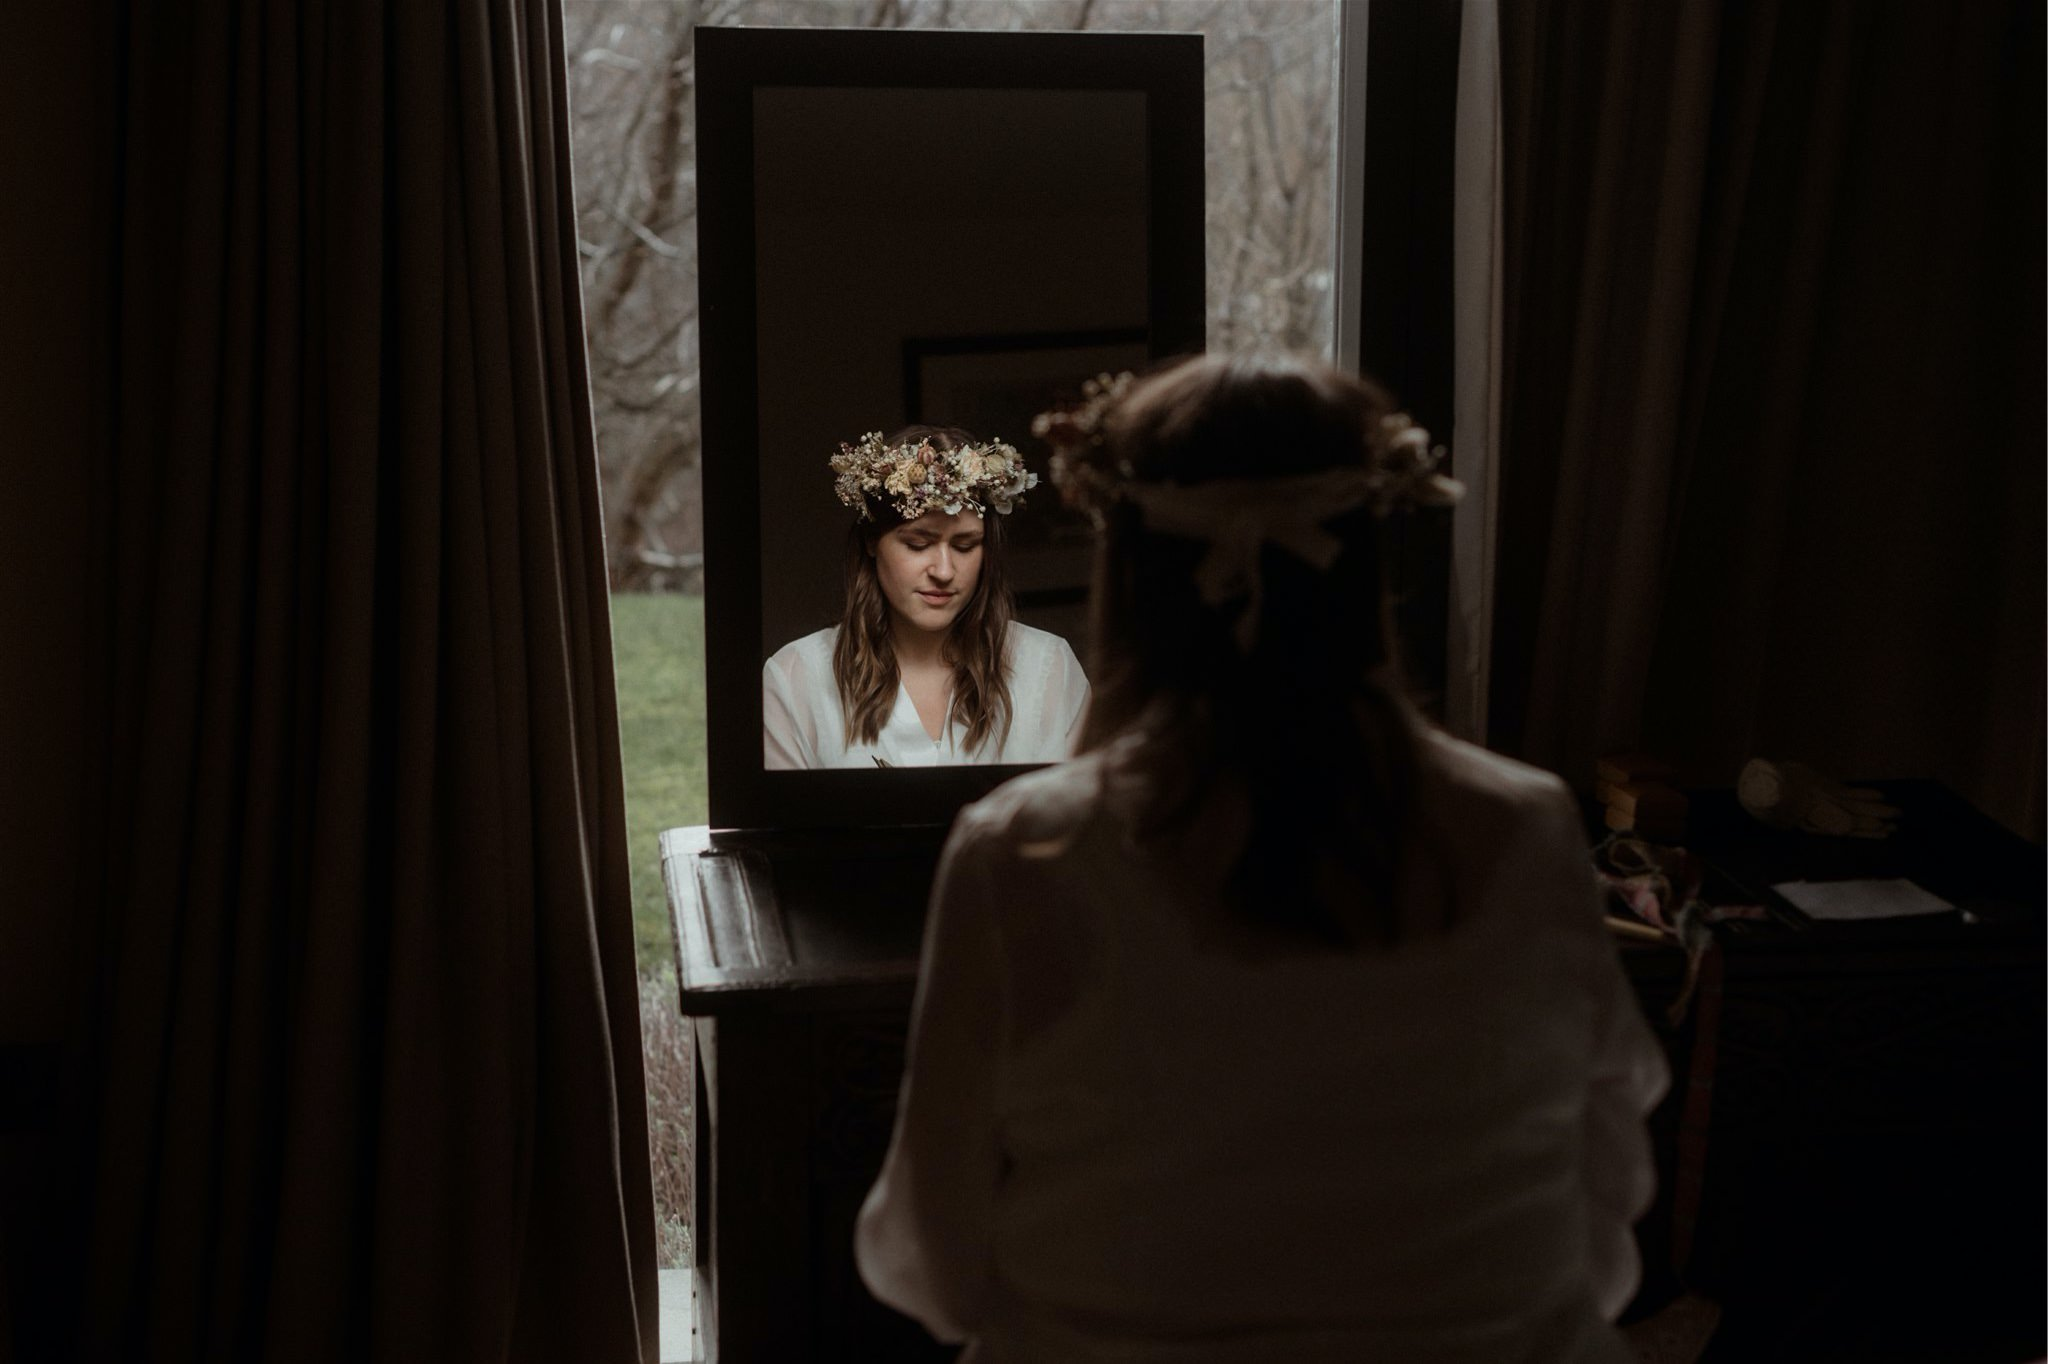 Bride with flower crown in front of a mirror at an elopement in Scotland